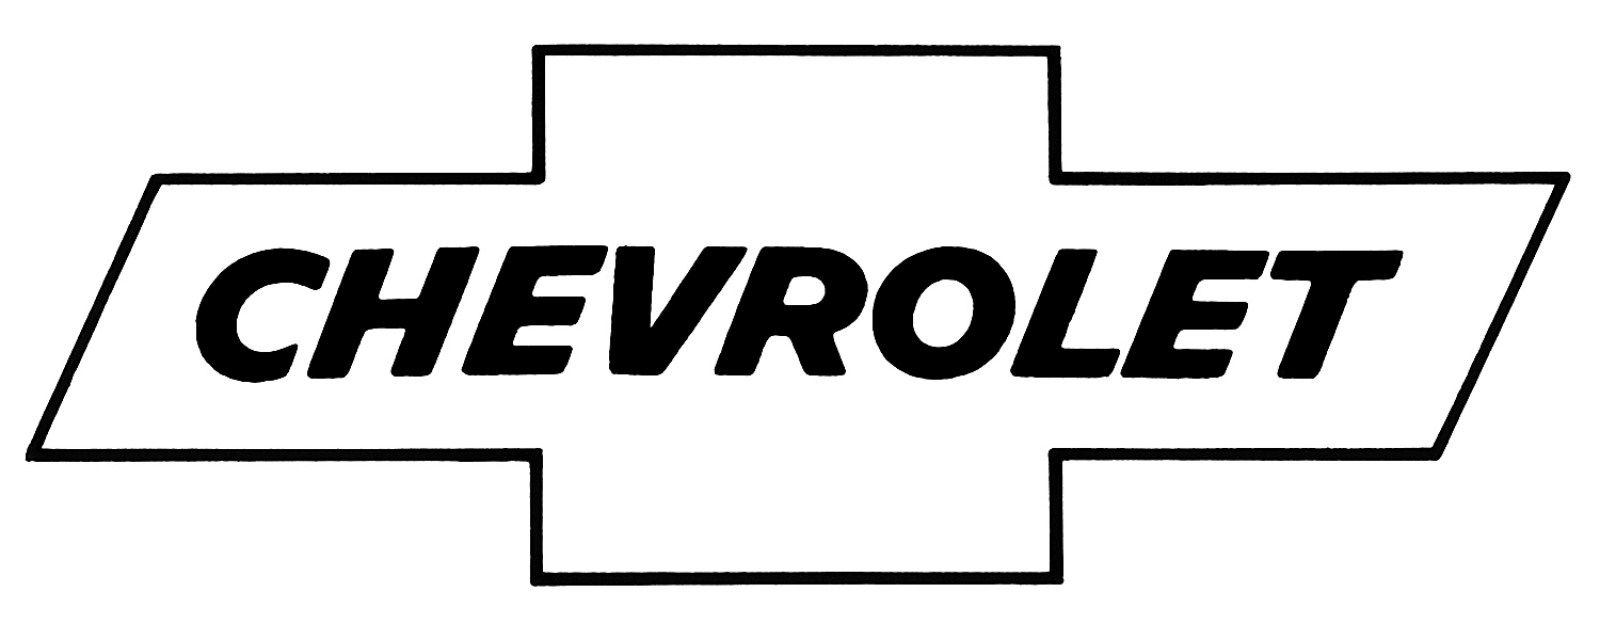 image for chevrolet logo vector man cave pinterest chevrolet rh pinterest com chevrolet logo vector art chevrolet logo vector png